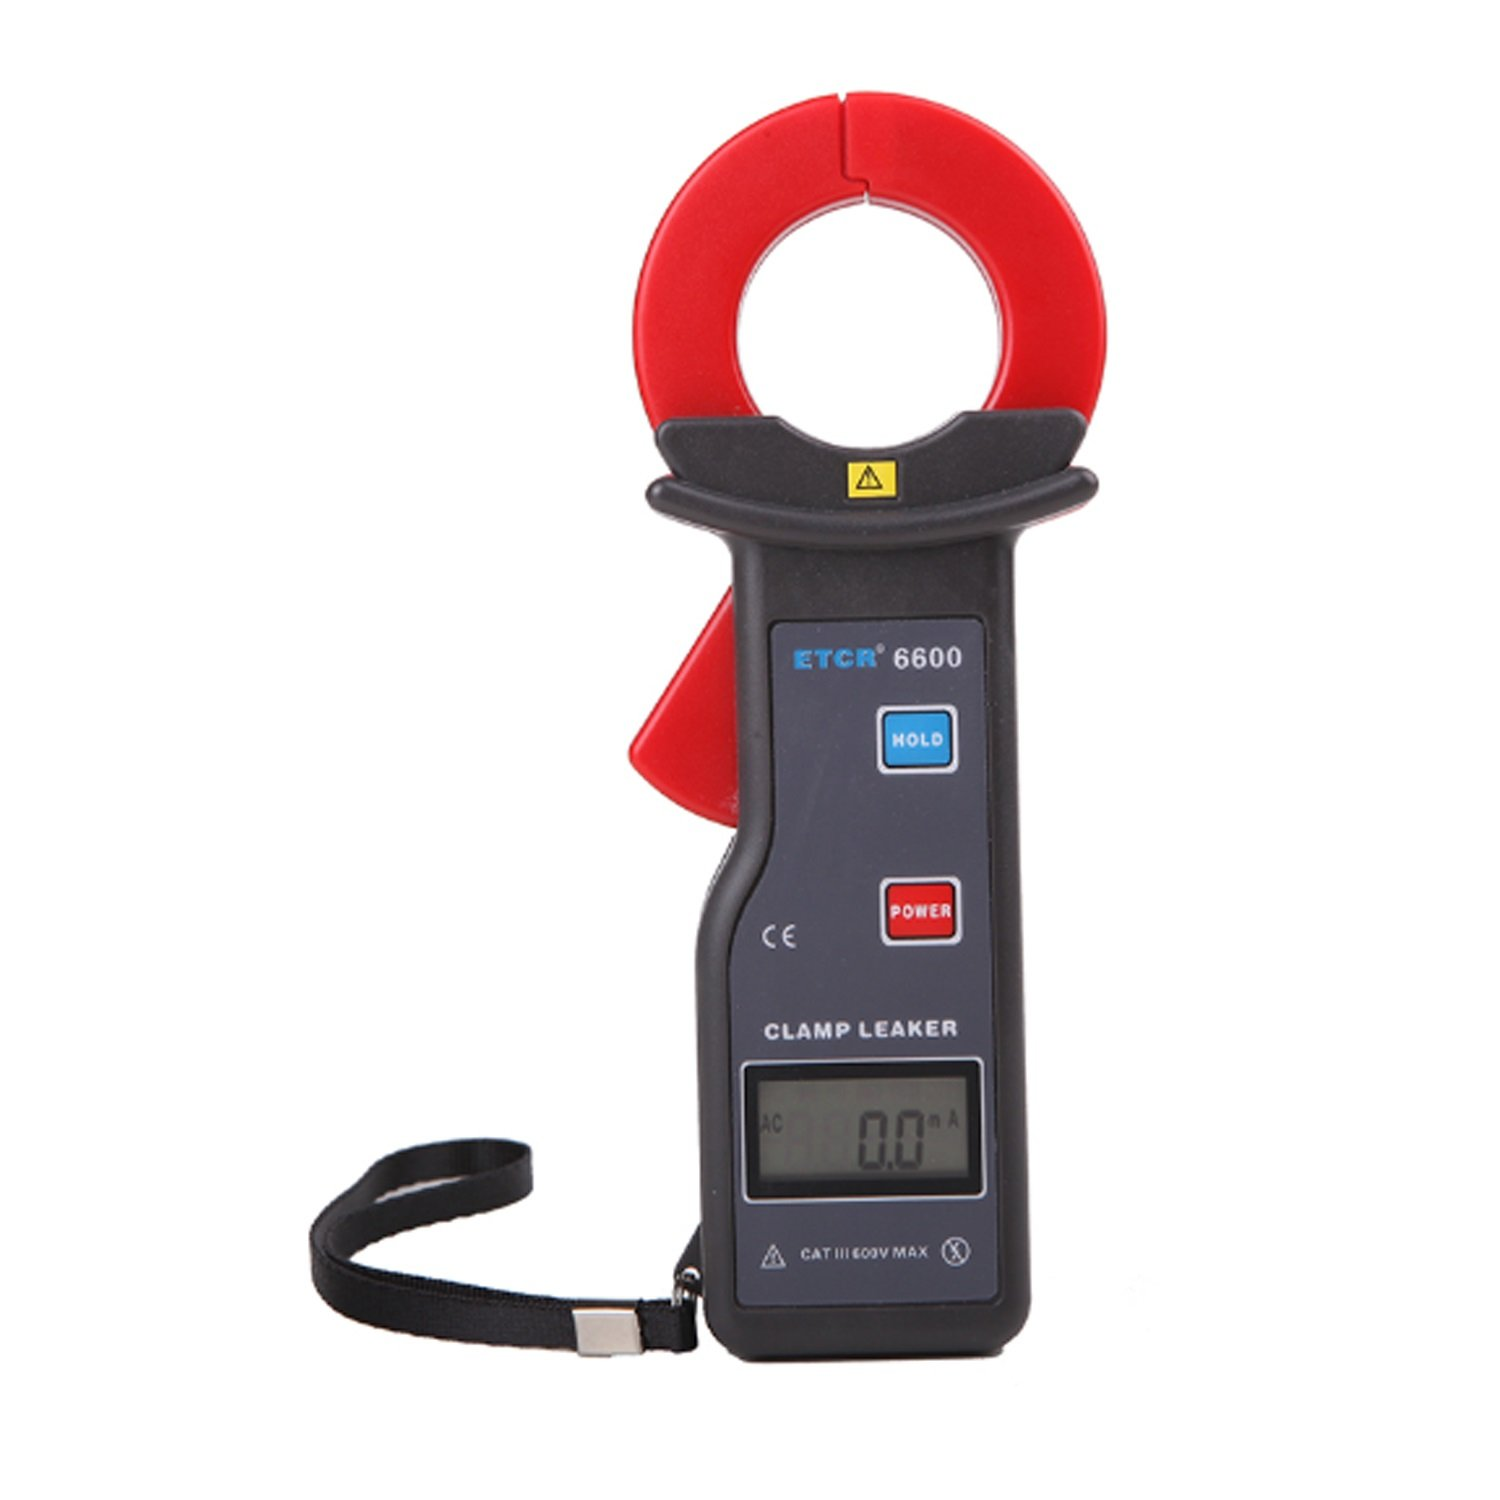 Lanlanmaoyimg Ammeter 1mA Resolution AC Leakage Current Clamp Meter with 0~600A Digital clamp Measurement RS232 Interface ETCR6600 Precision Measurement